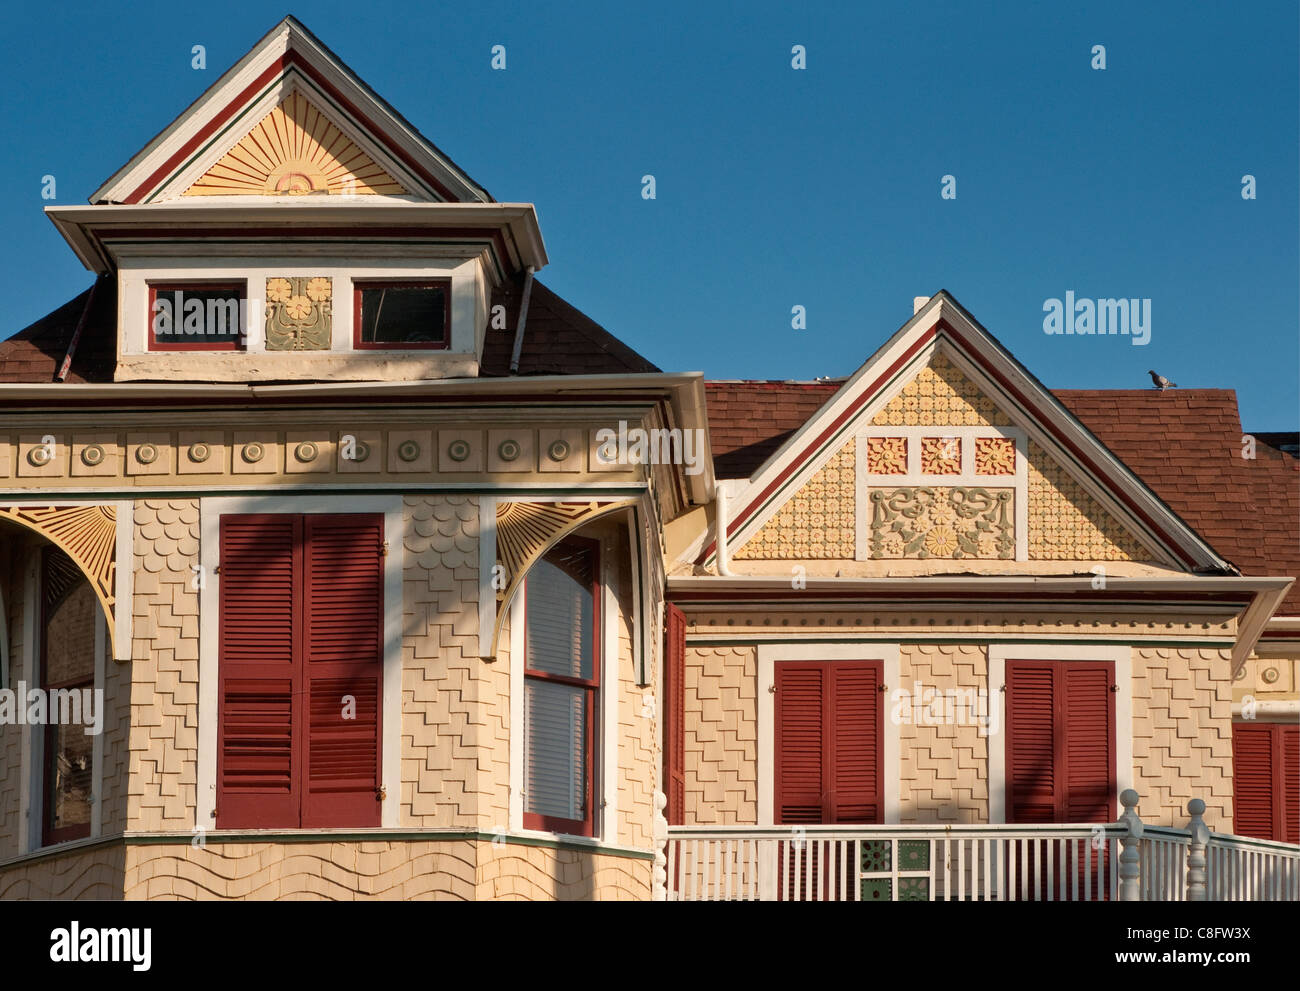 'Gingerbread' details at Beissner House, built 1898, Ball Avenue at East End Historic District, sunrise, - Stock Image